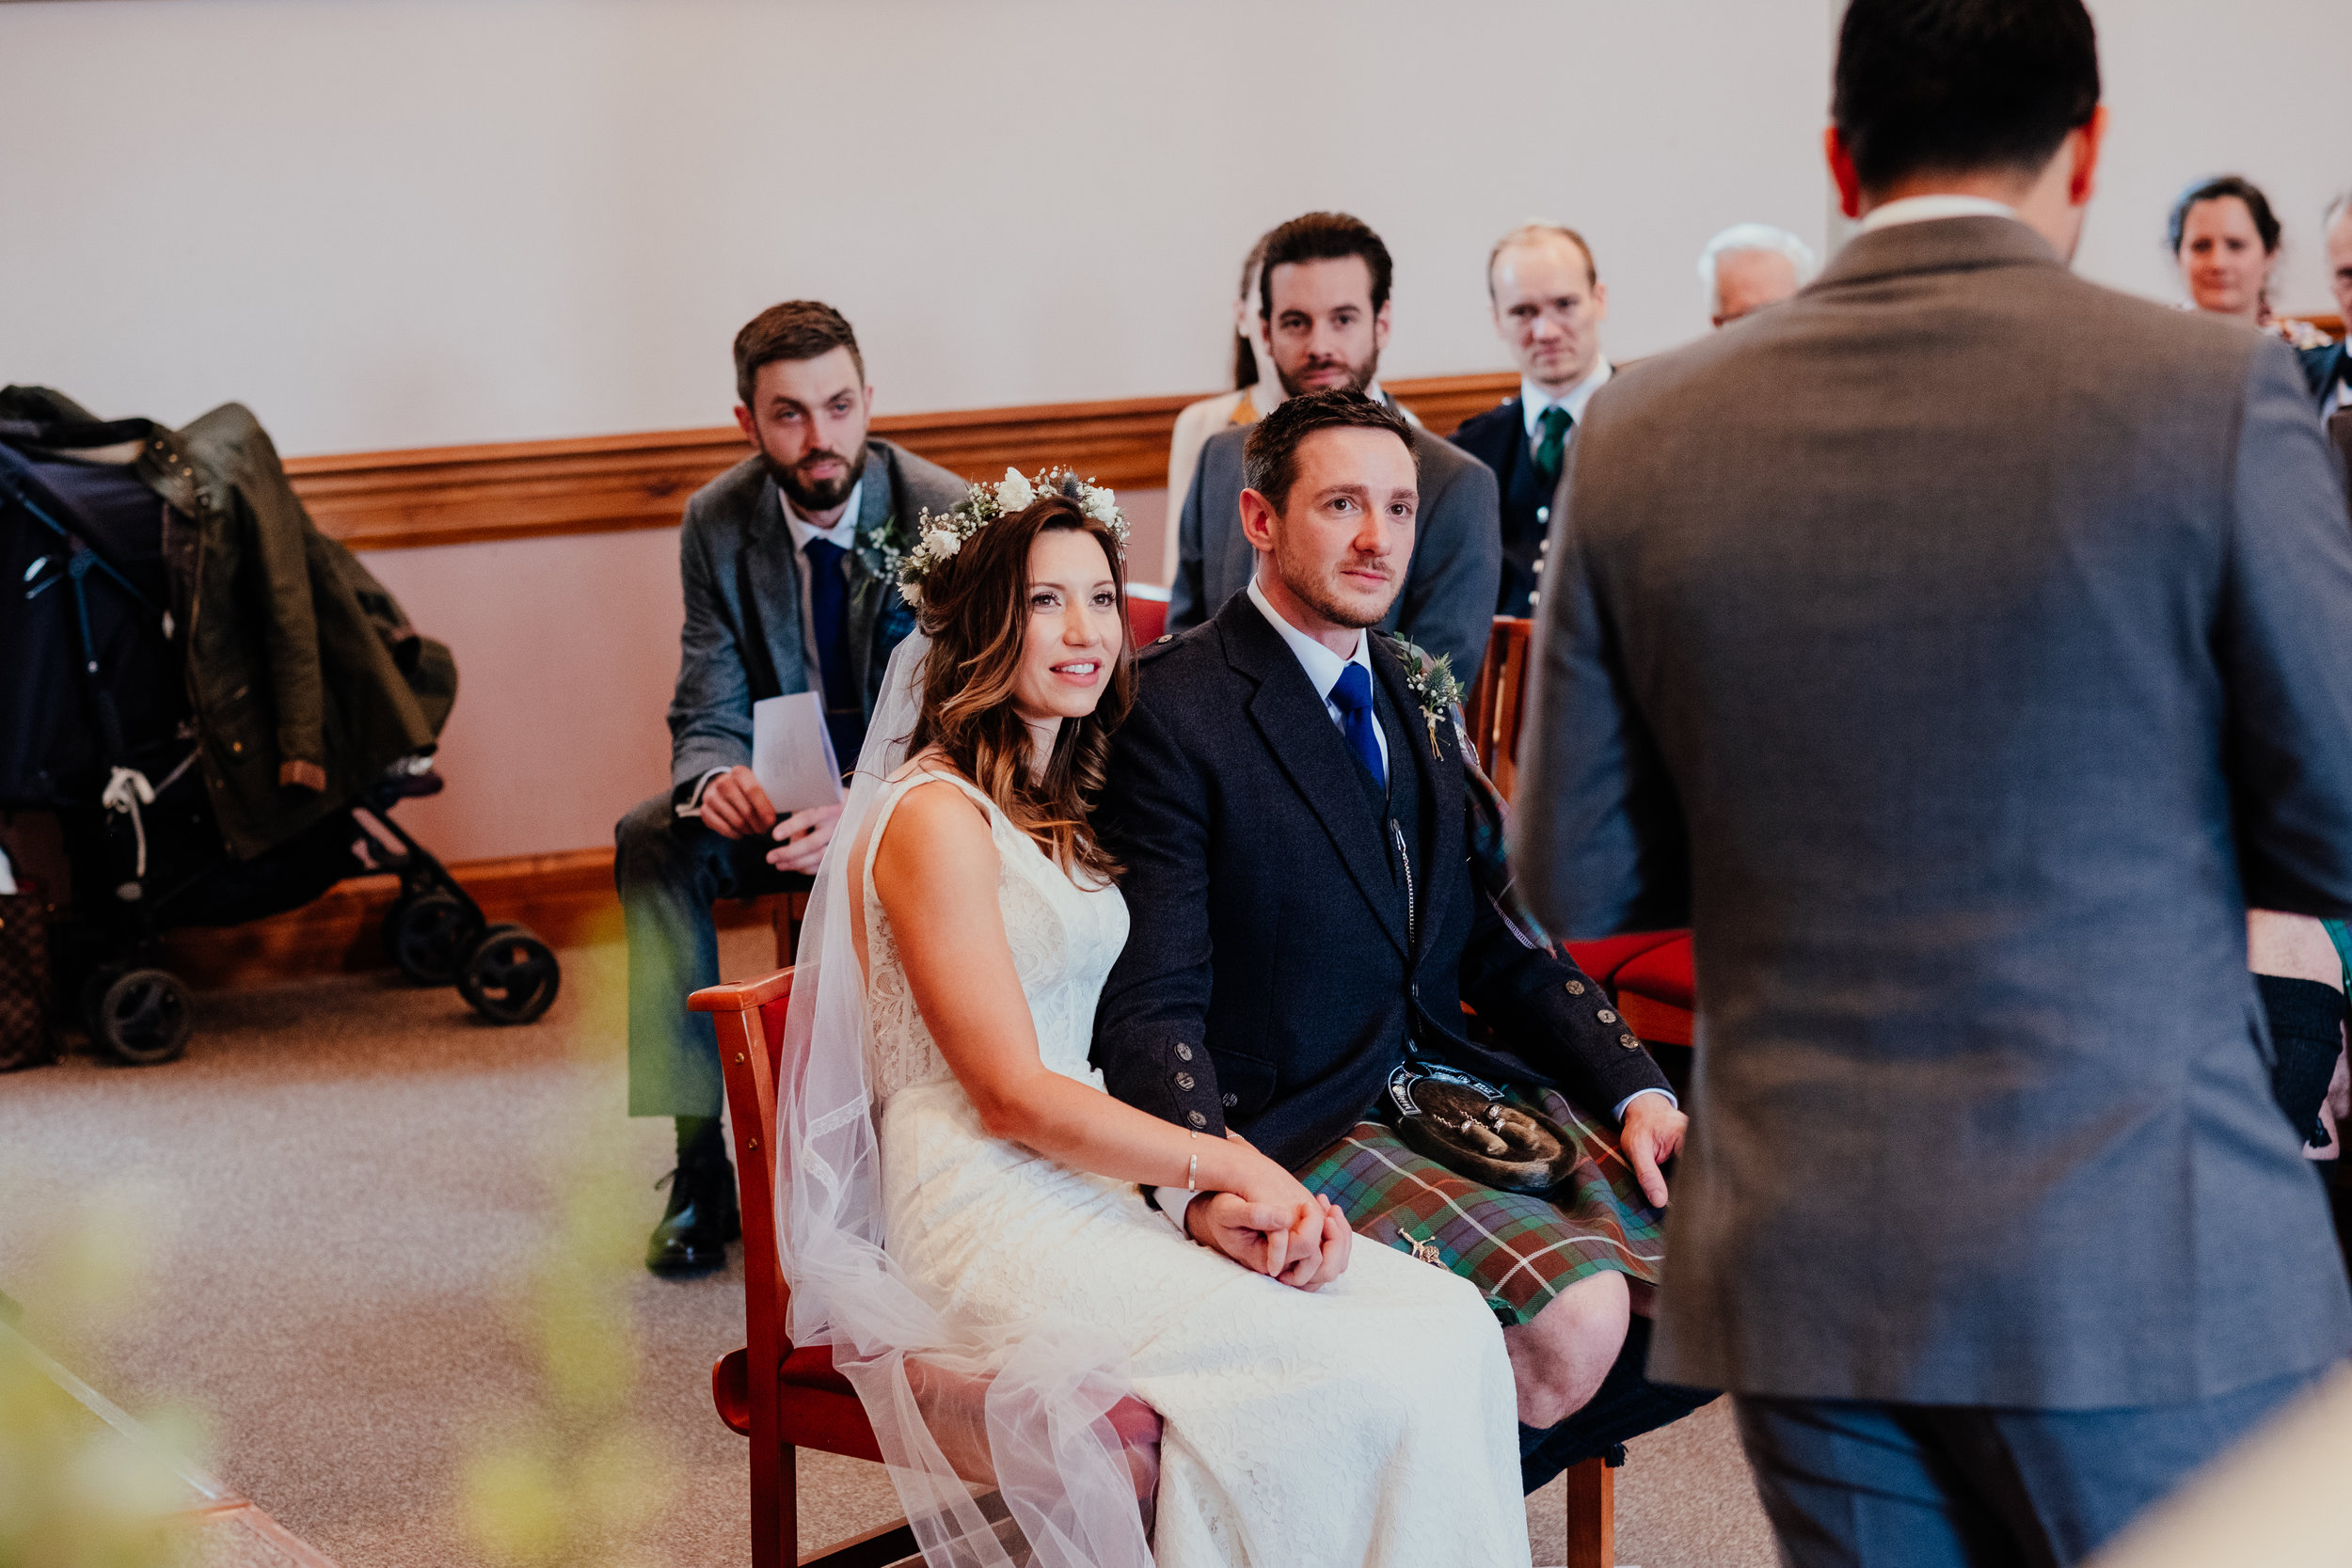 Bride and Groom sat down holding hands